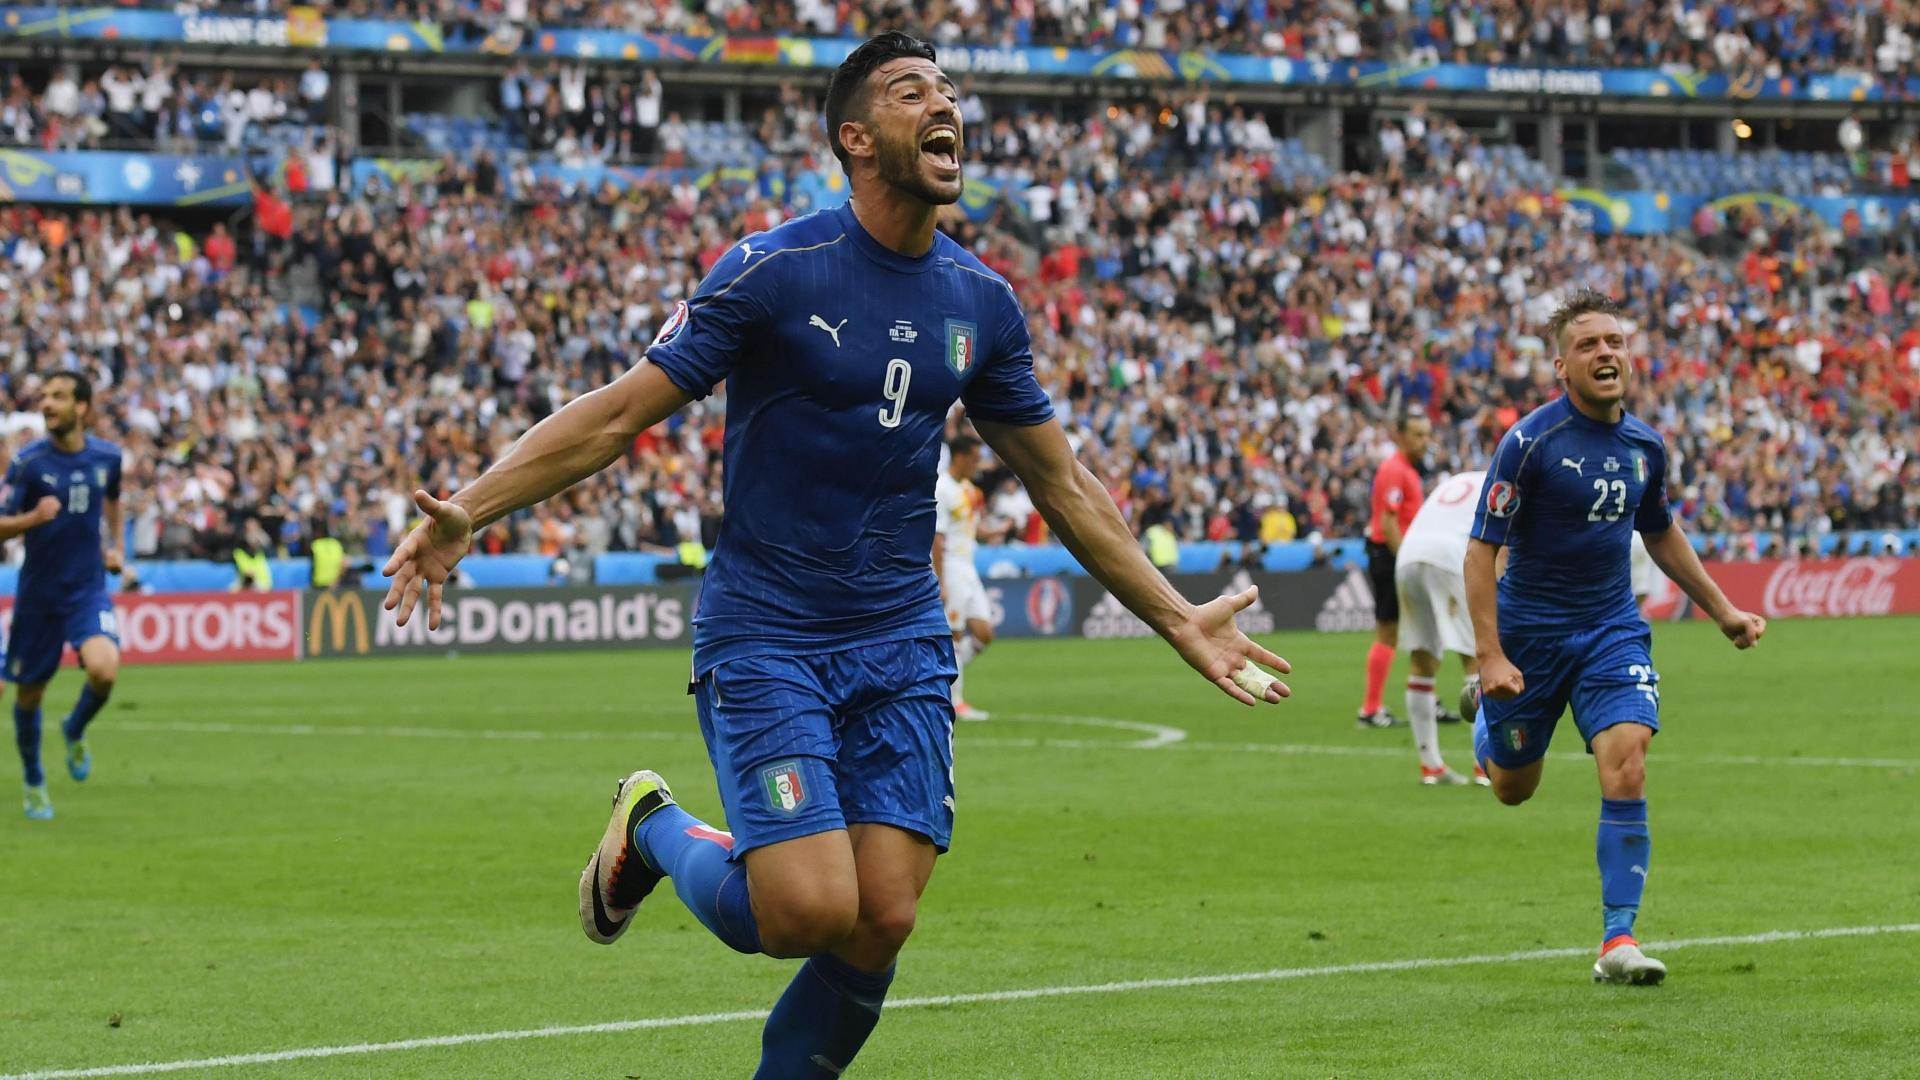 Italy tops Spain to advance to quarterfinals